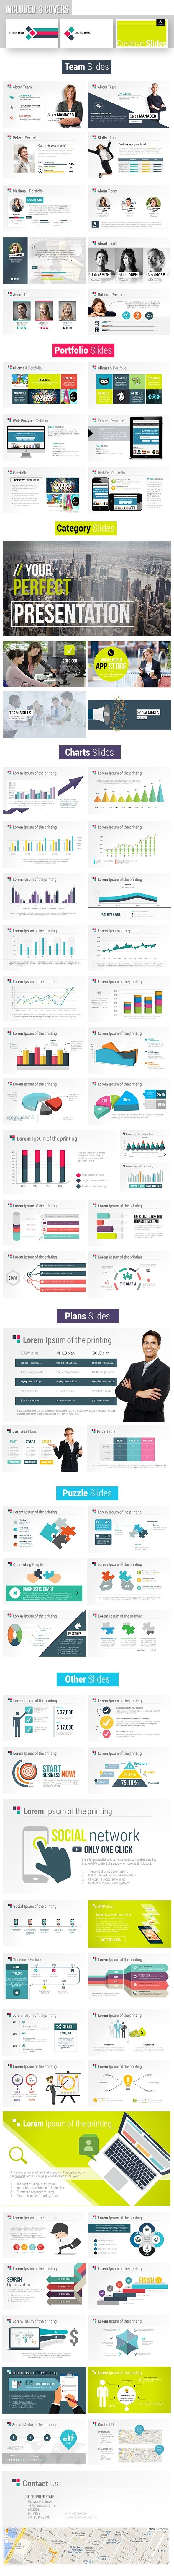 Fresh Digital Slides - Creative Powerpoint Template